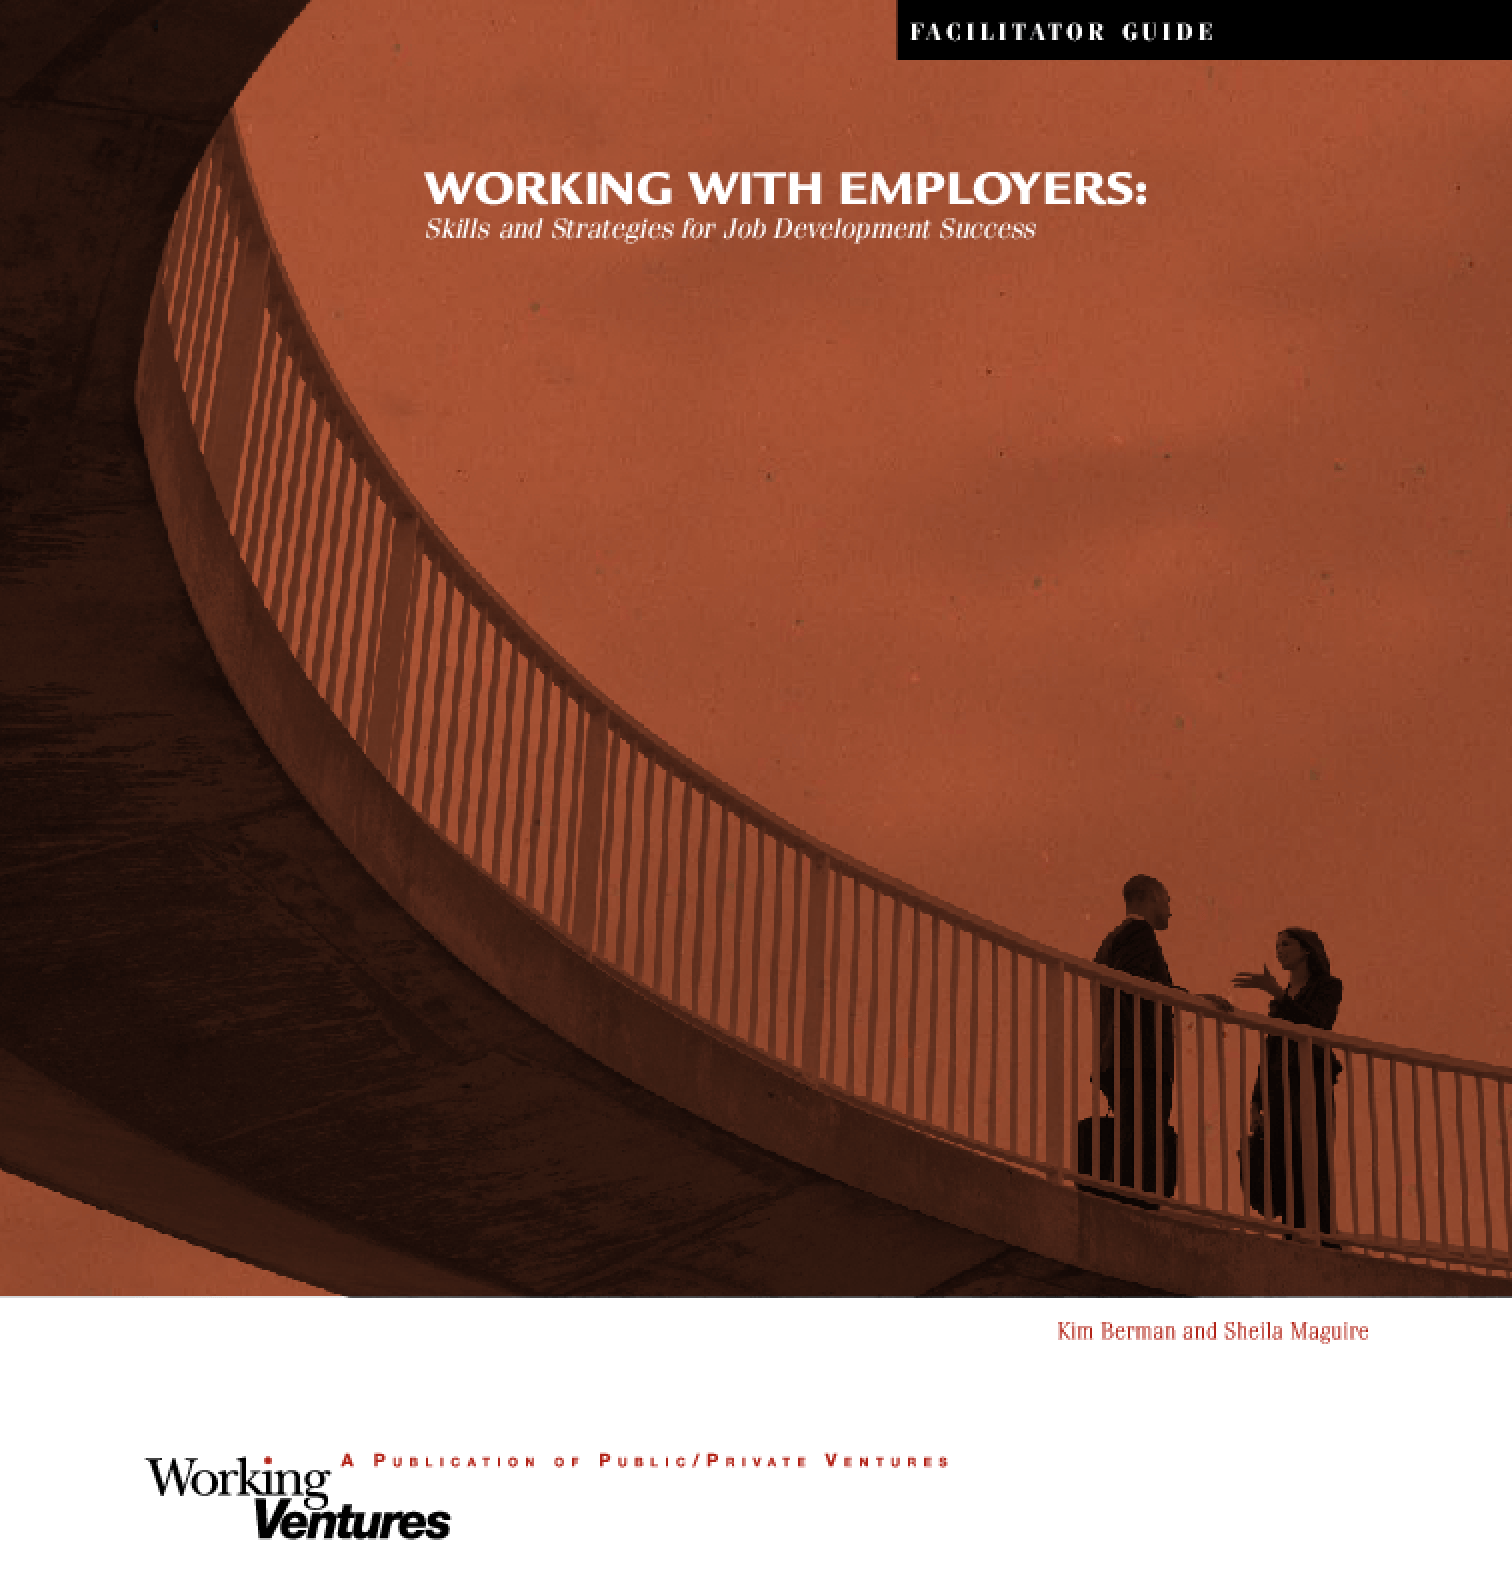 Working with Employers: Skills and Strategies for Job Development Success - Facilitator Guide